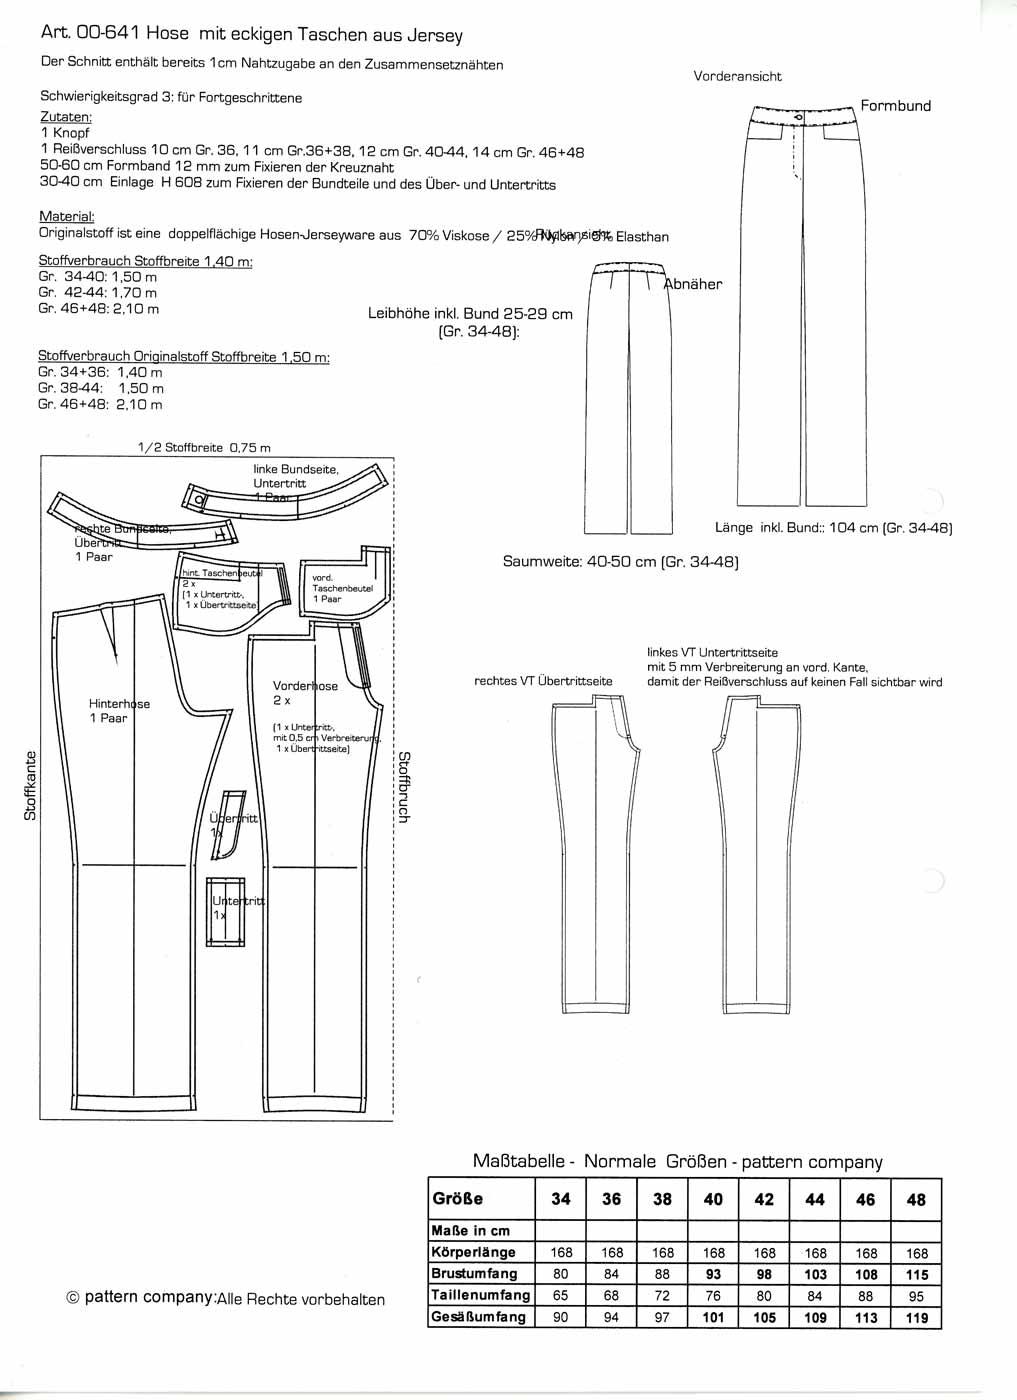 Schnittmuster - Hose - 00-641 - Pattern Company